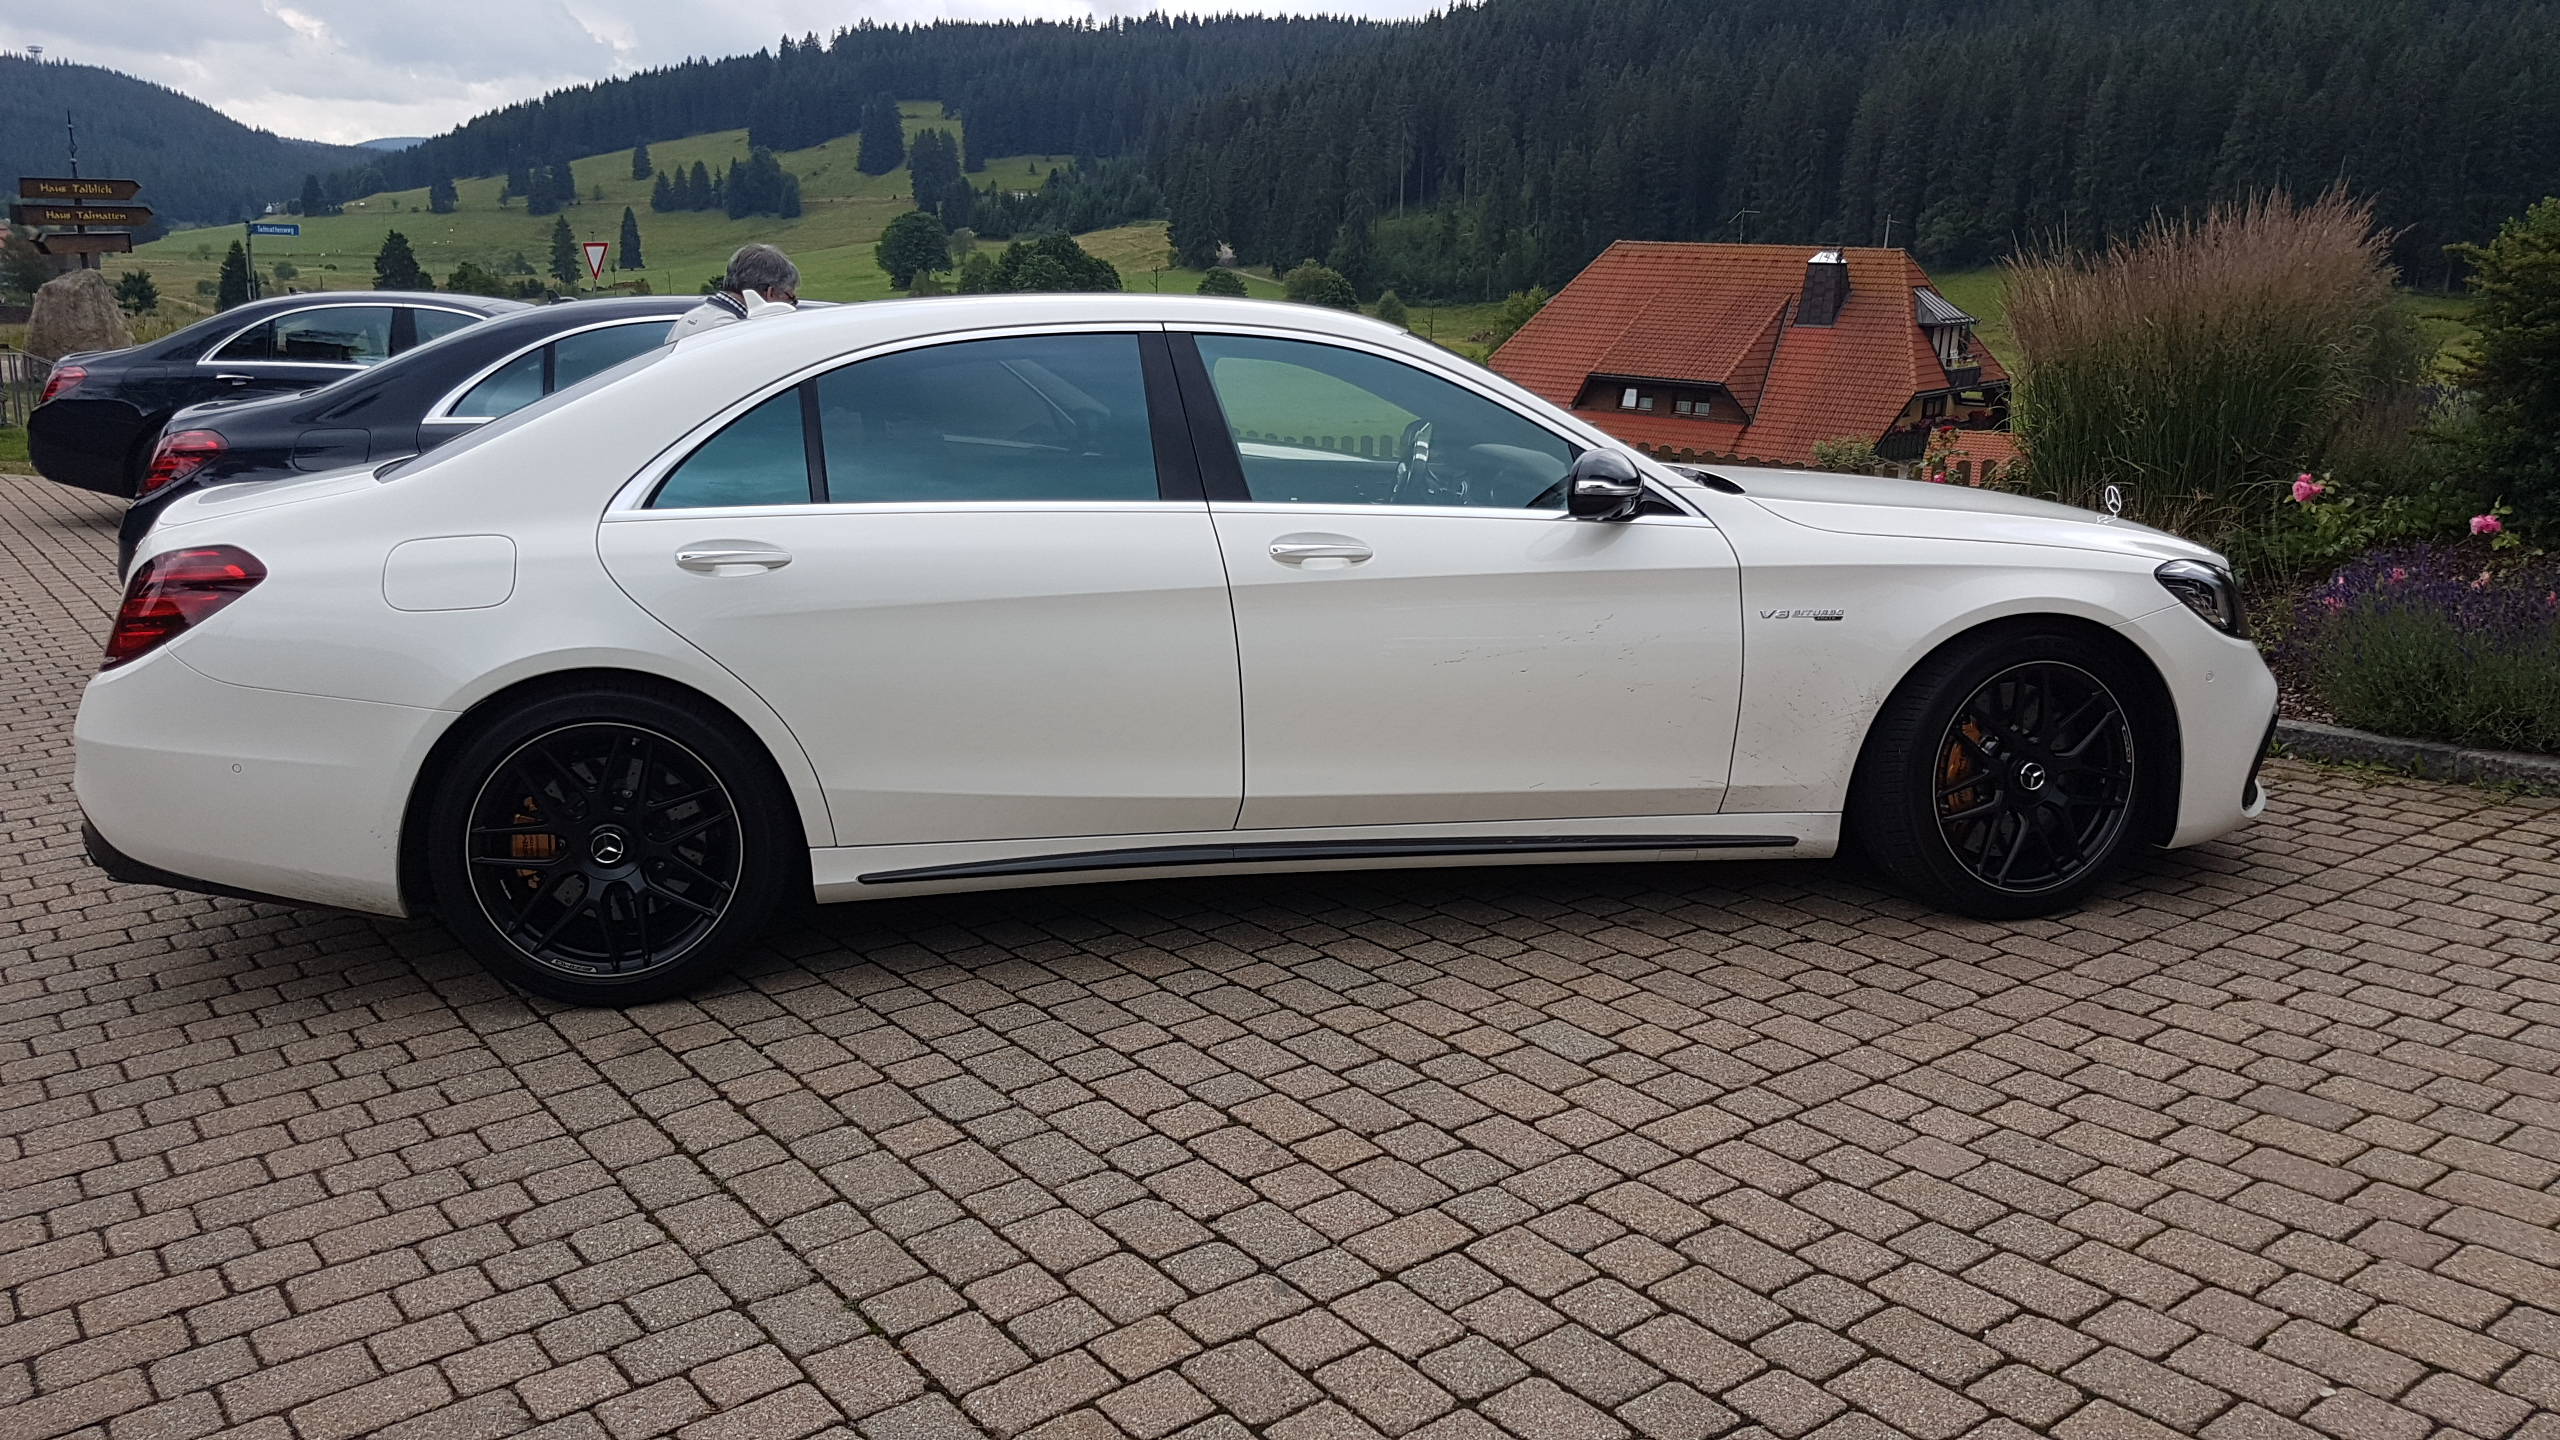 essai rapide mercedes amg s 63 4matic 2018 luxury car. Black Bedroom Furniture Sets. Home Design Ideas